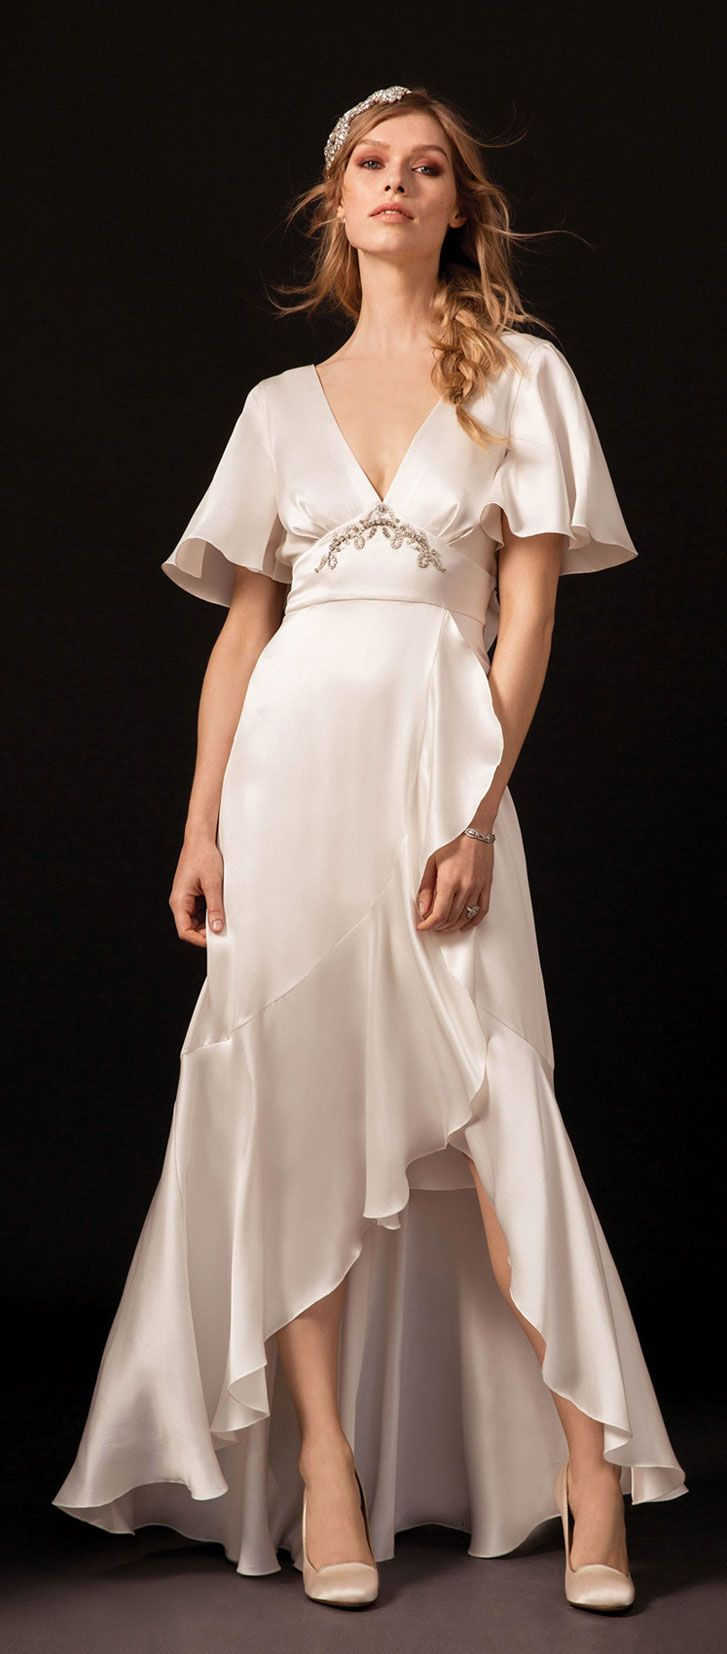 A romantic silk double satin gown, with ruffled panels high and low a line wedding dress #wedding #weddinggown #weddingdresses #weddingdress